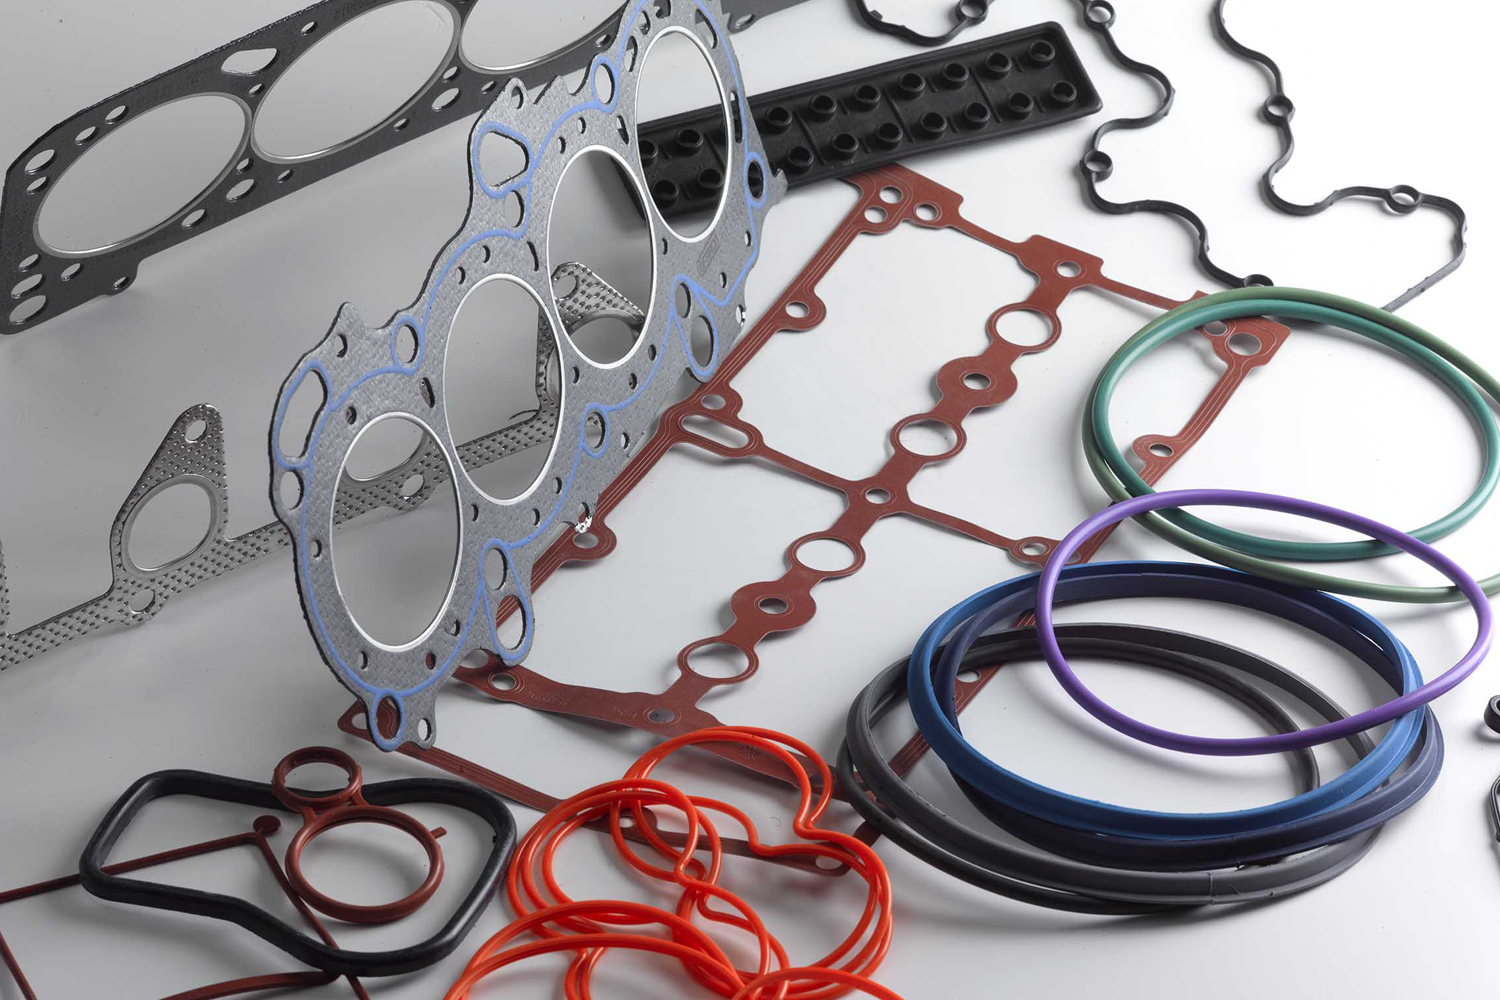 O-rings and cutouts on a flat surface for visual inspection purposes